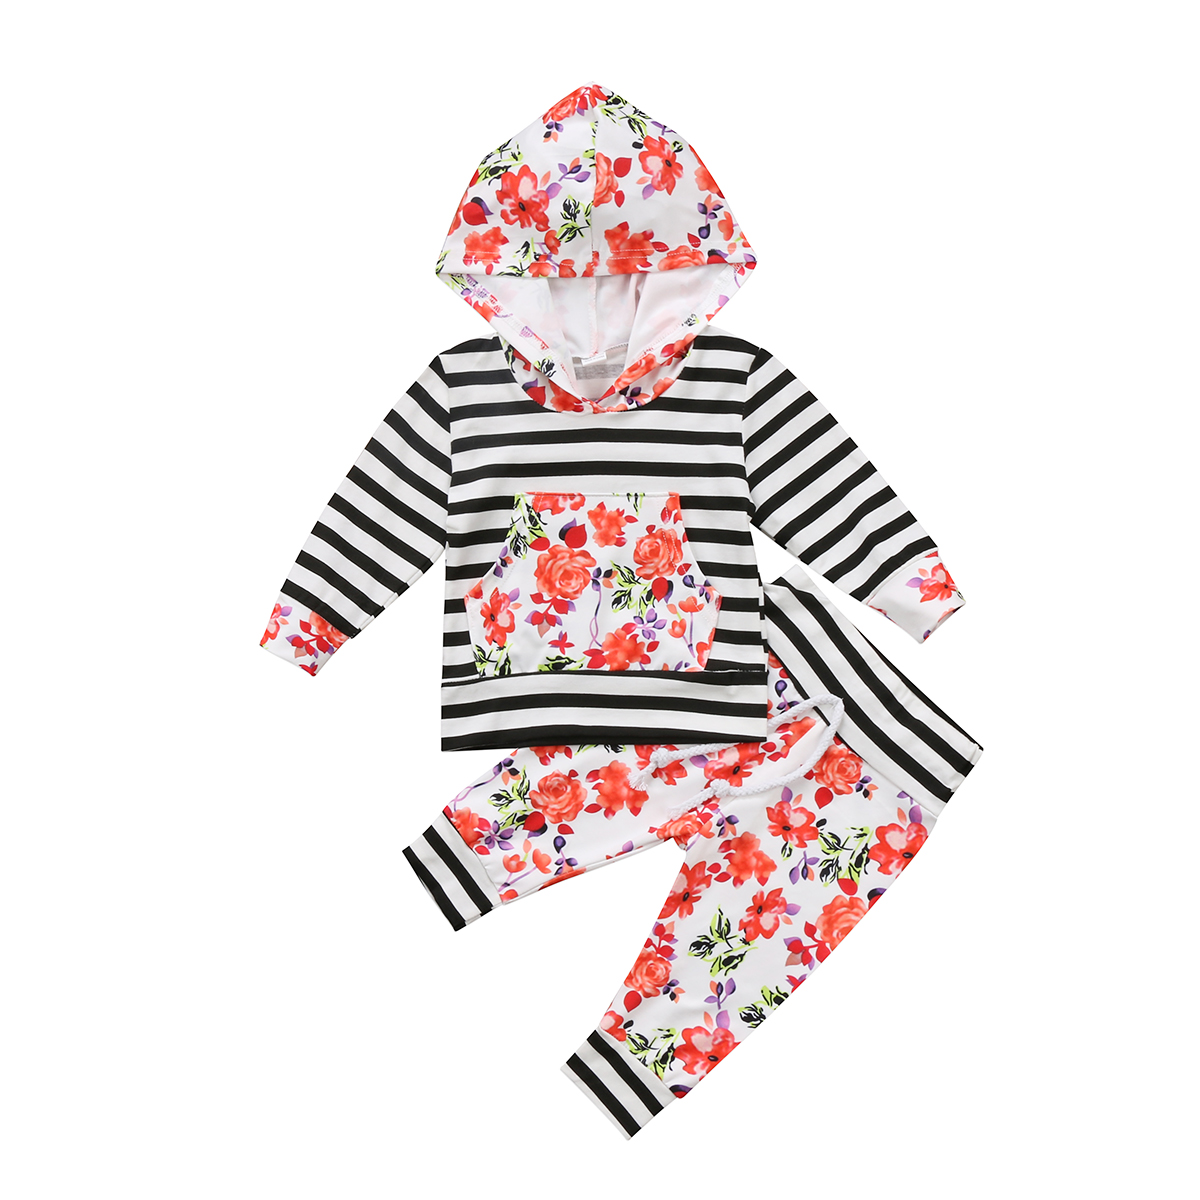 2PCS Newborn Infant Baby Boy Girl Hooded Tops Pants Home Outfits Set Clothes Set